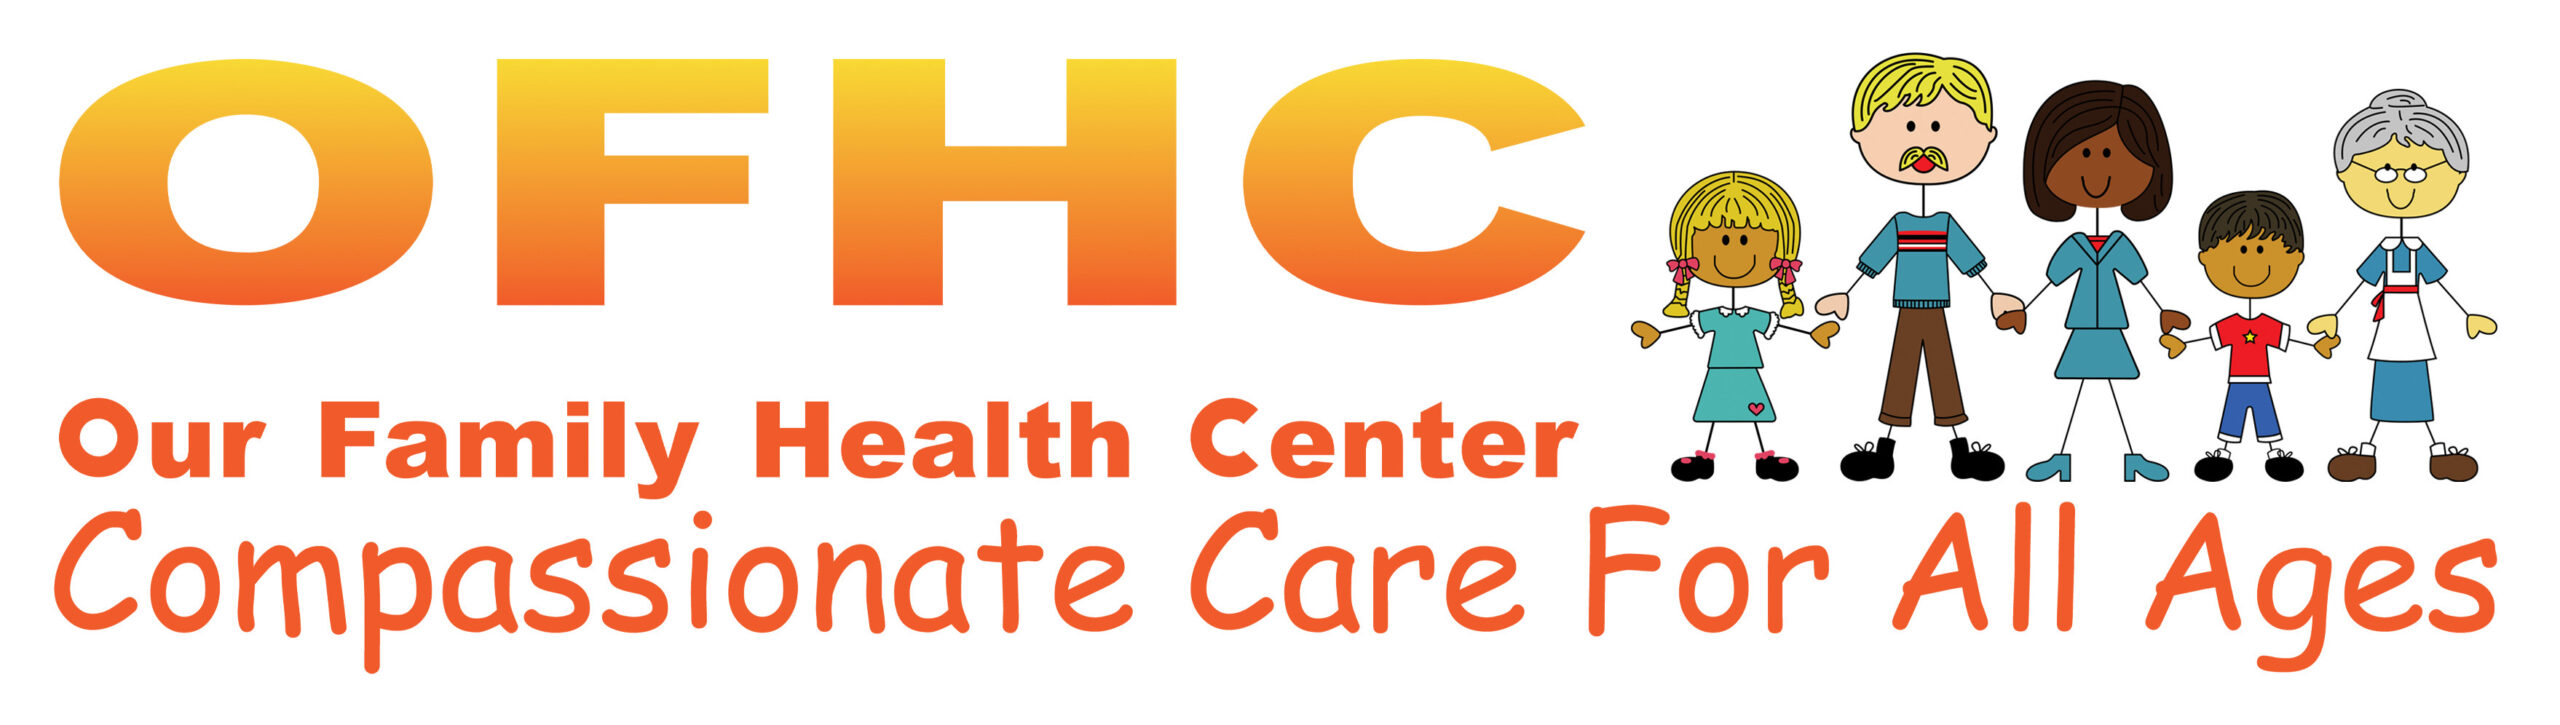 Our Family Health Center